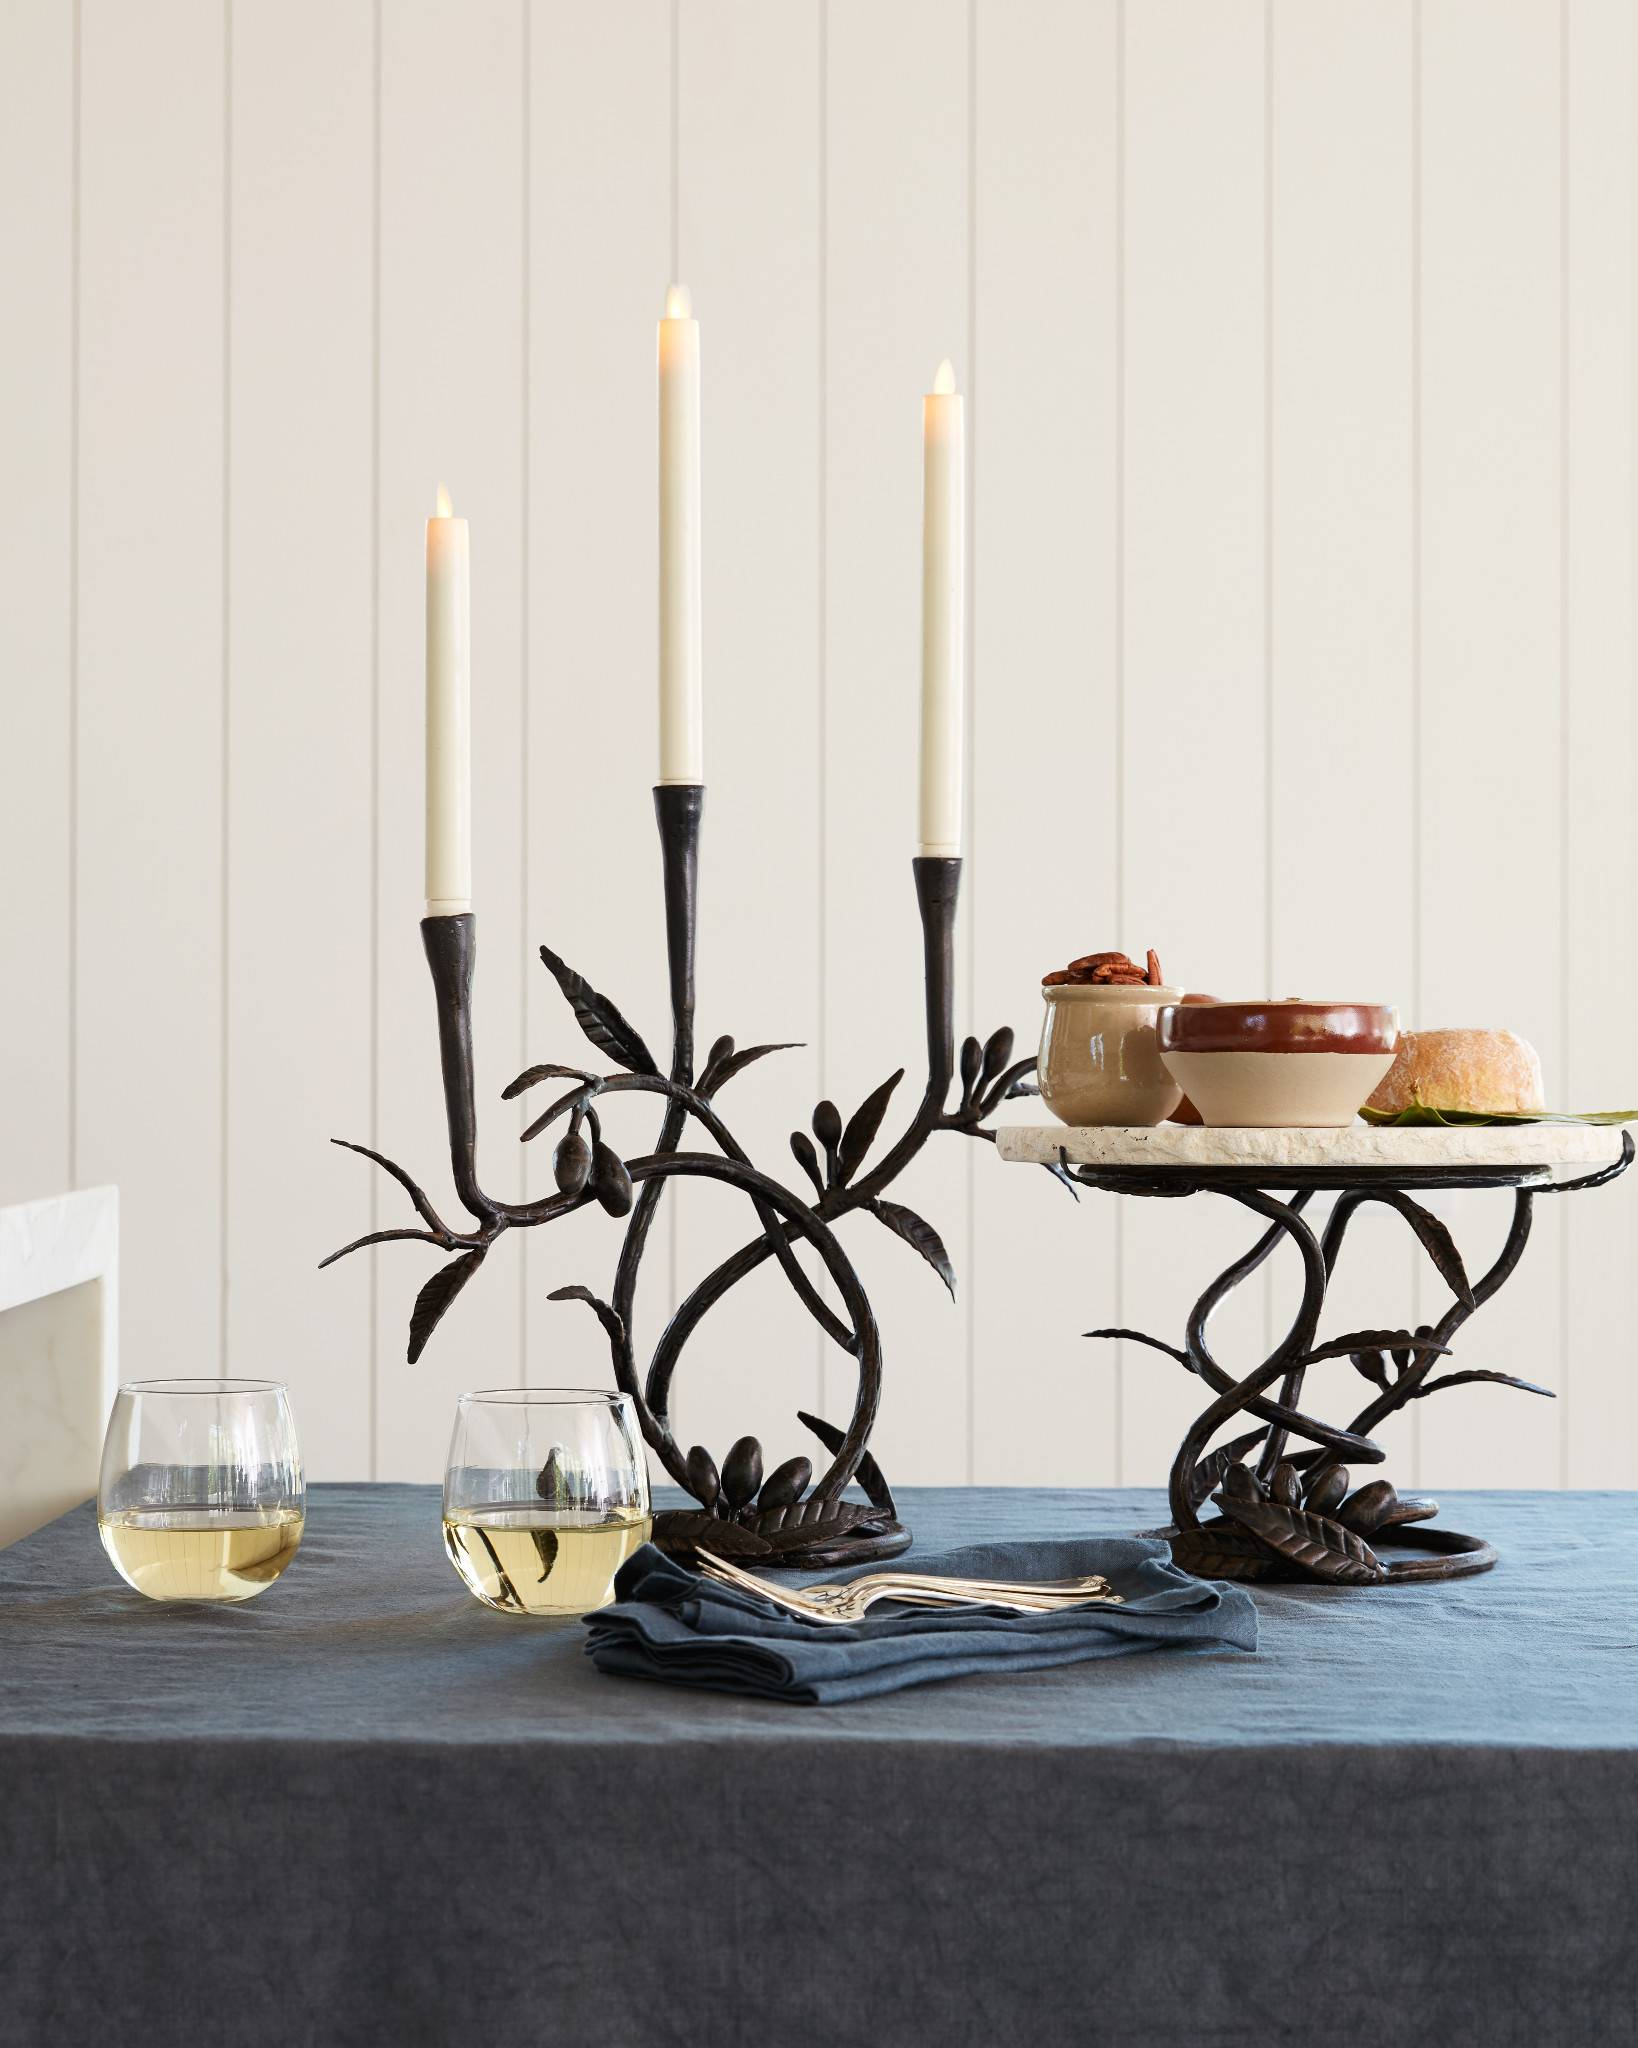 ... Miracle Flame LED Wax Taper Candles by Balsam Hill